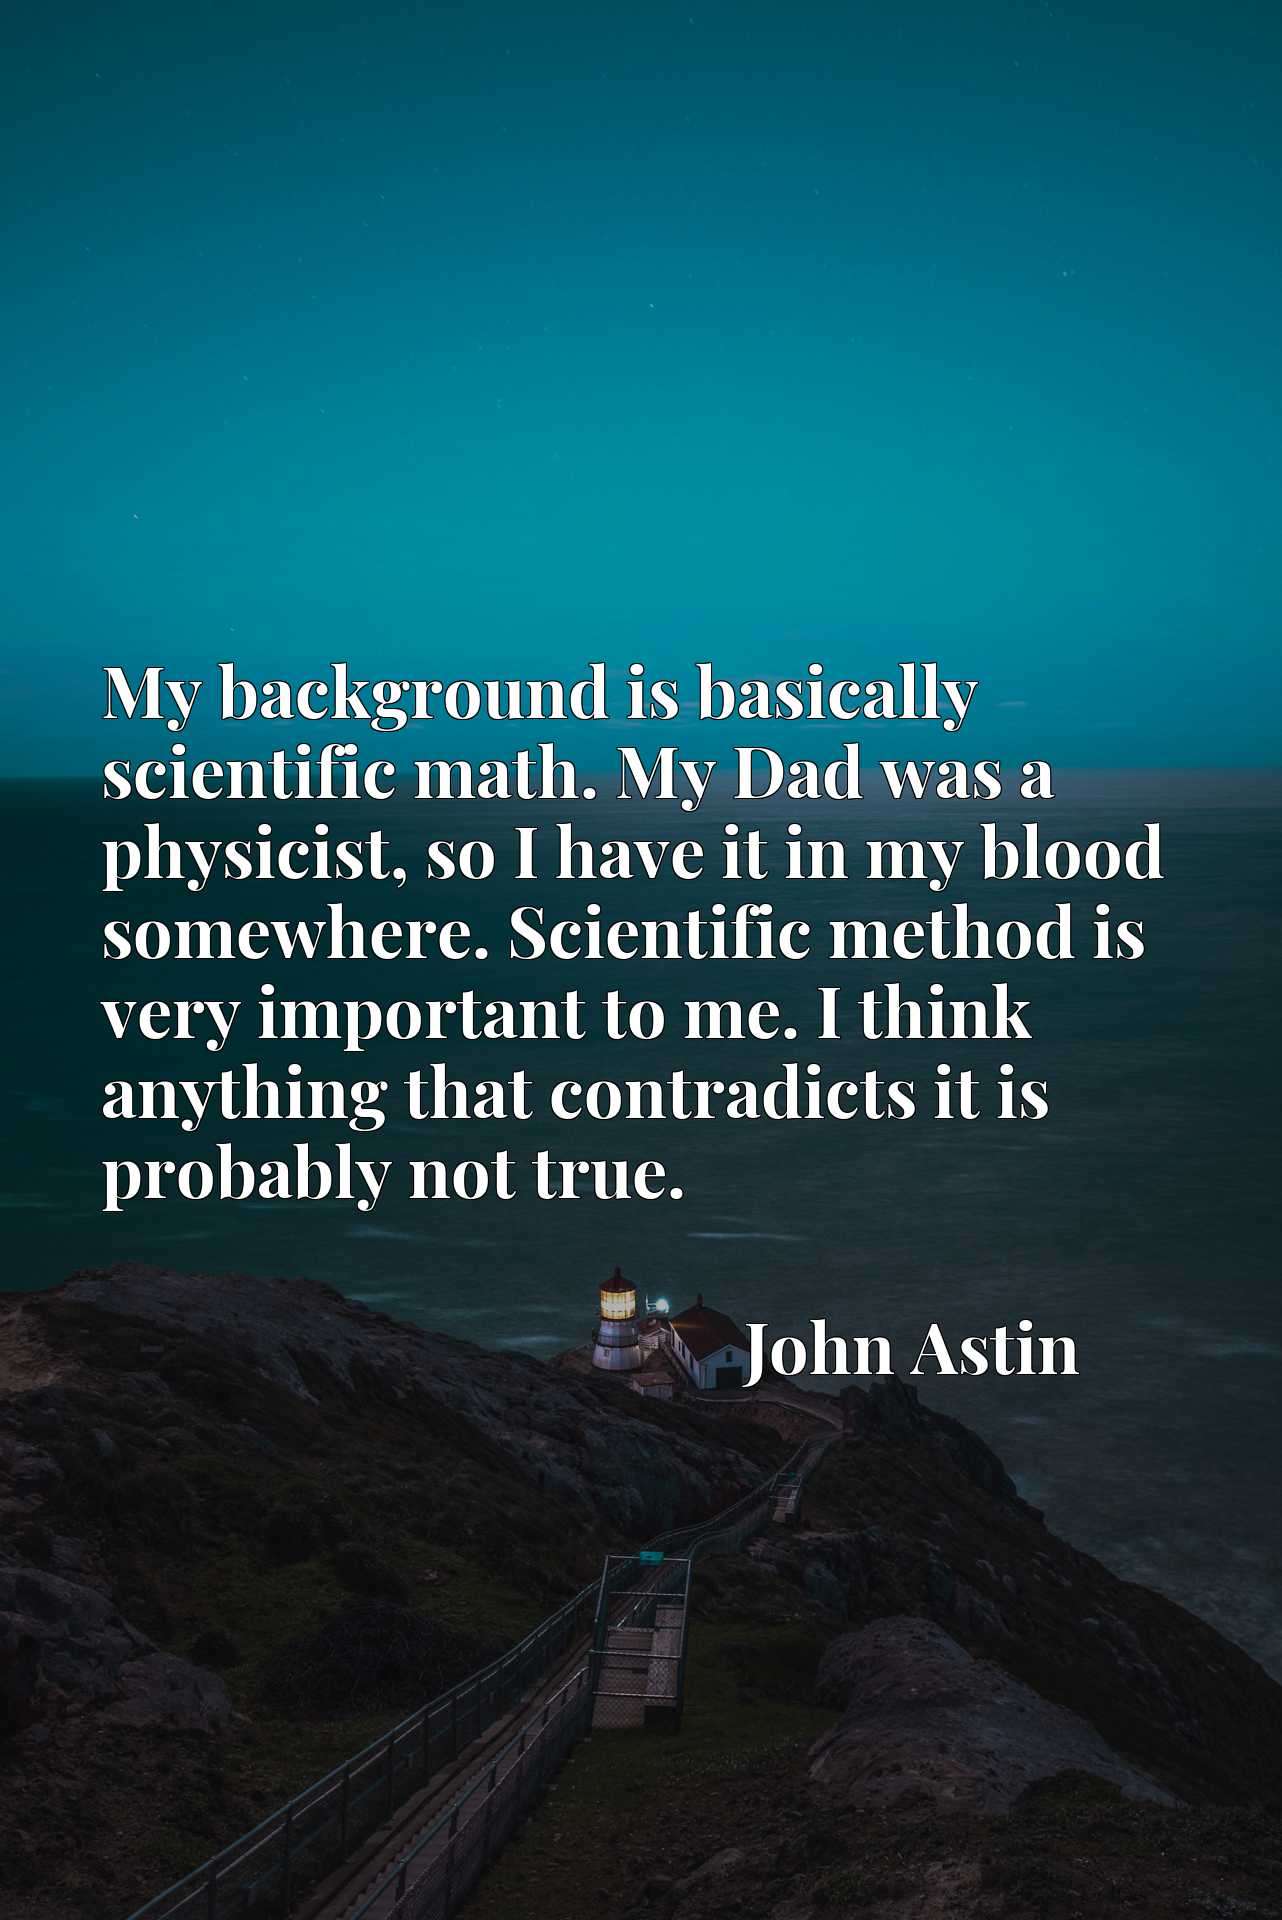 My background is basically scientific math. My Dad was a physicist, so I have it in my blood somewhere. Scientific method is very important to me. I think anything that contradicts it is probably not true.